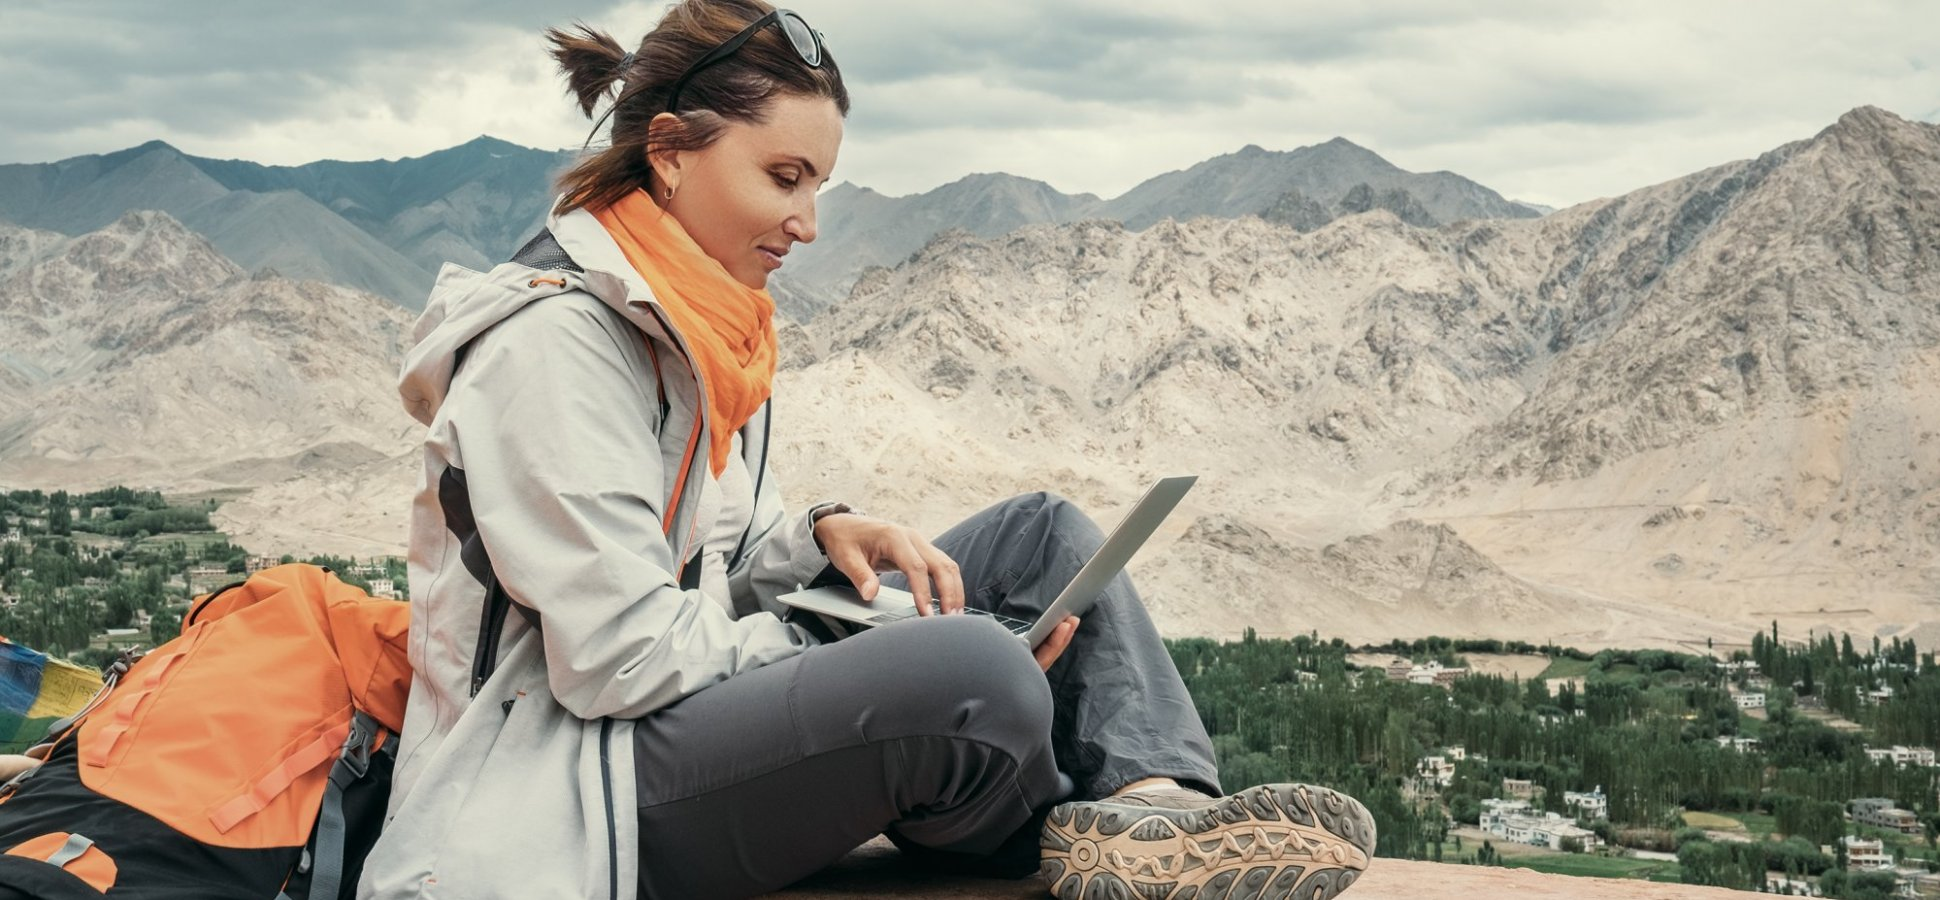 These Apps and Tools Will Make You an Extremely Successful Remote Worker